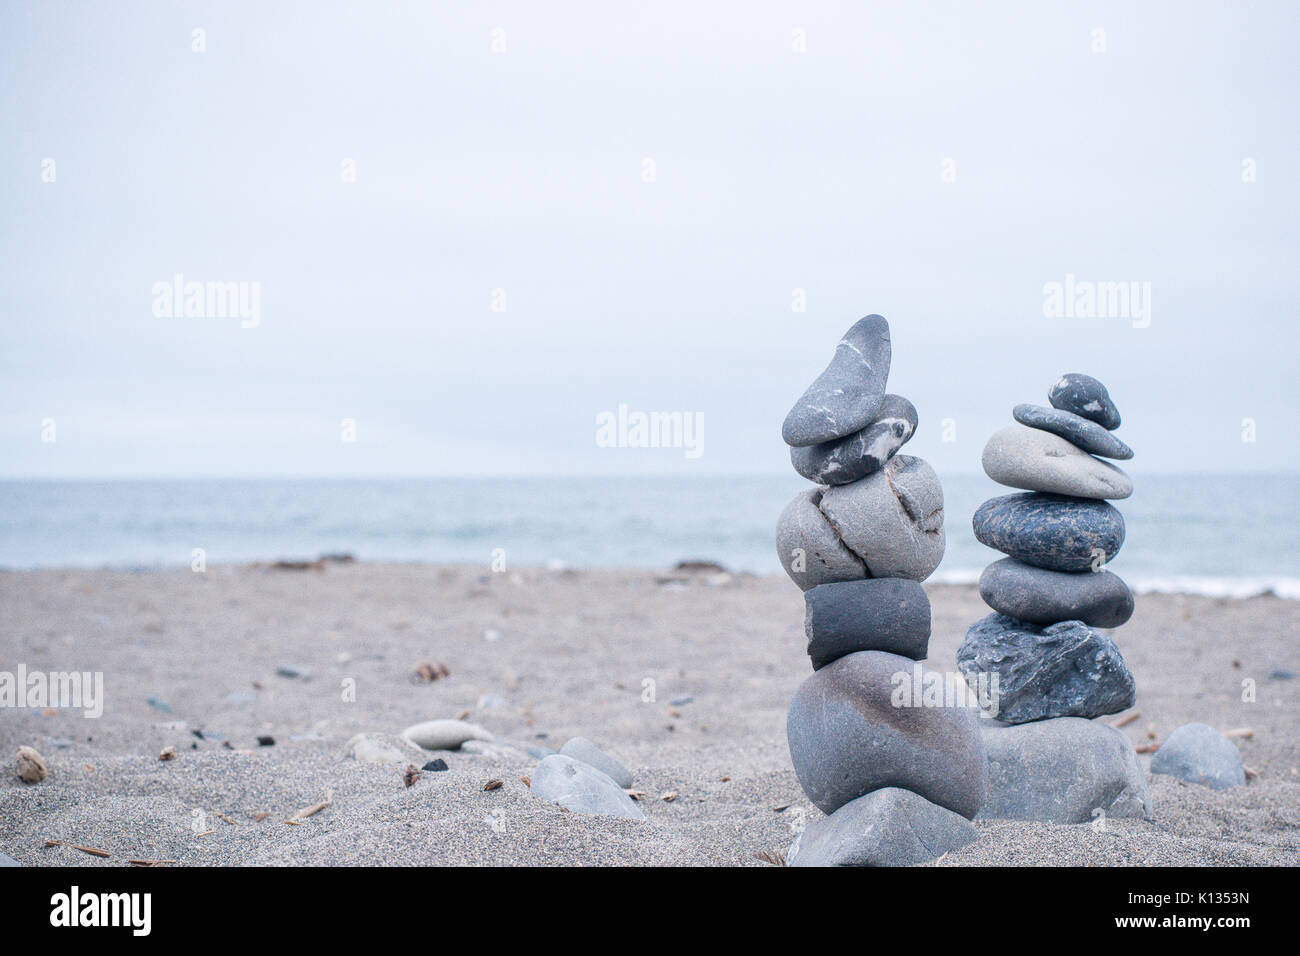 Monochrome, Serene, Blue Stacked rocks on a California beach symbolizing Peace, Balance, Meditation, and Mindfulness - Stock Image